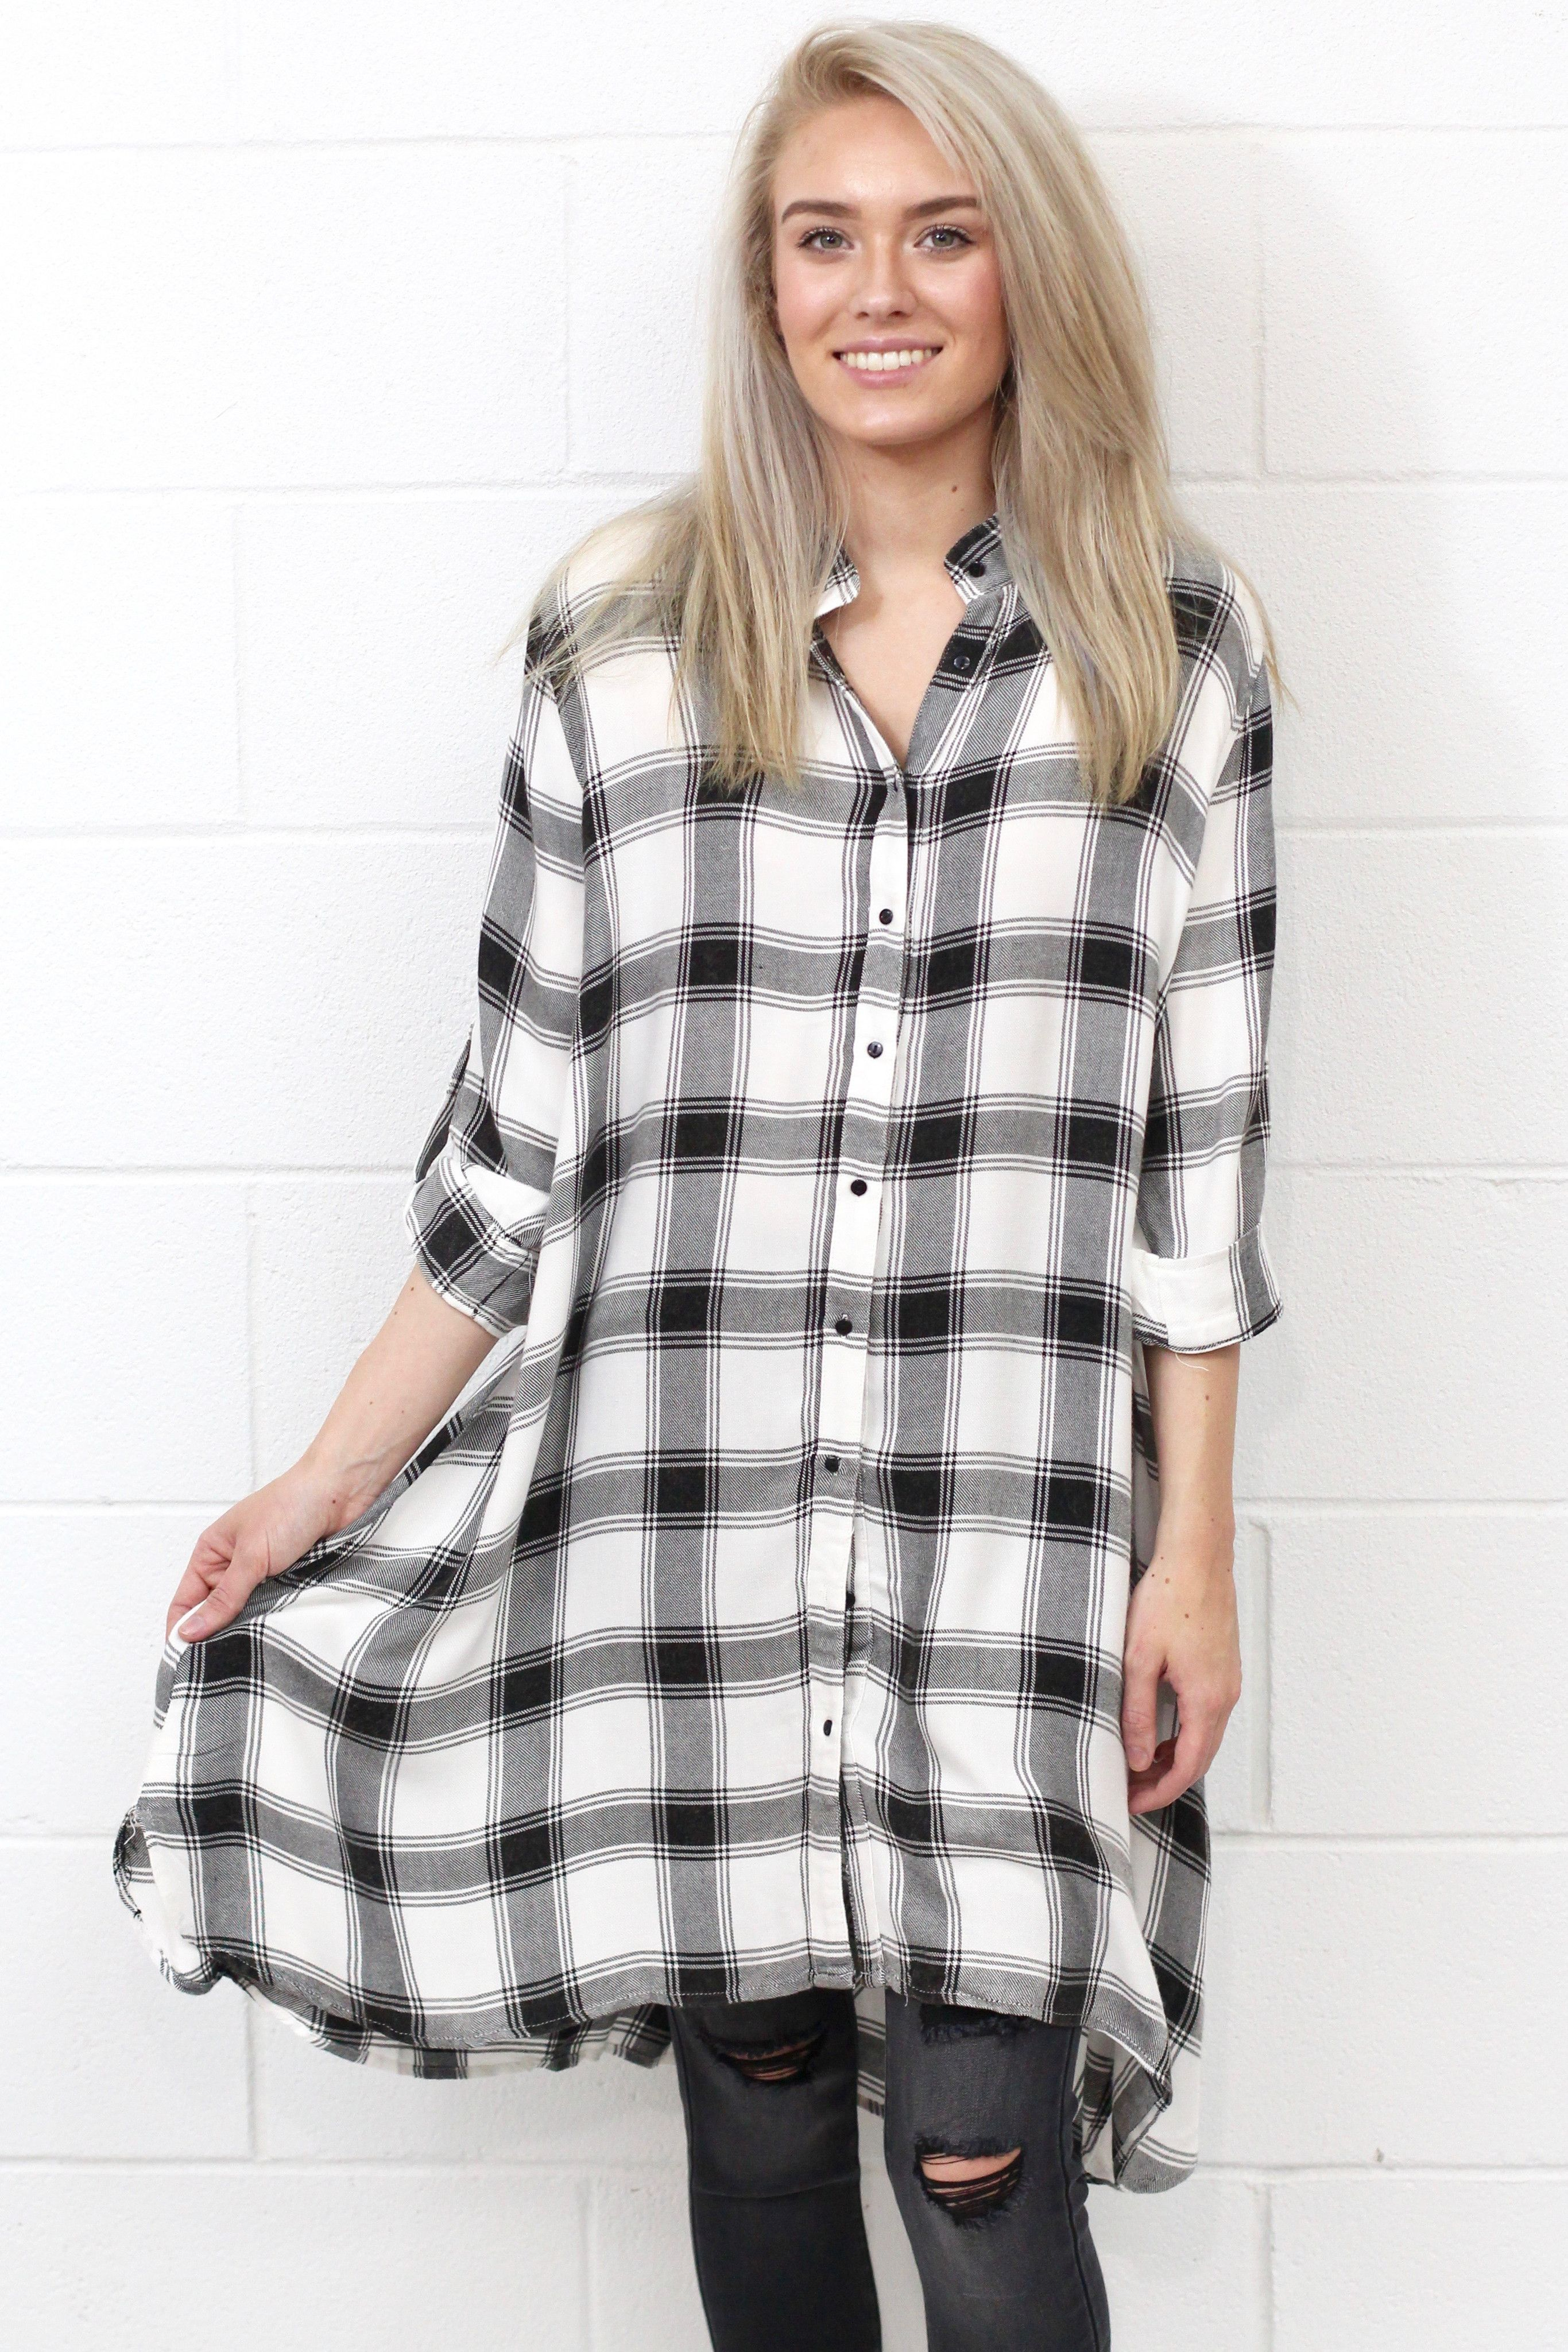 Flannel shirt outfits for women  Your Boyfriends Flannel Shirt Dress WhiteBlack  Products